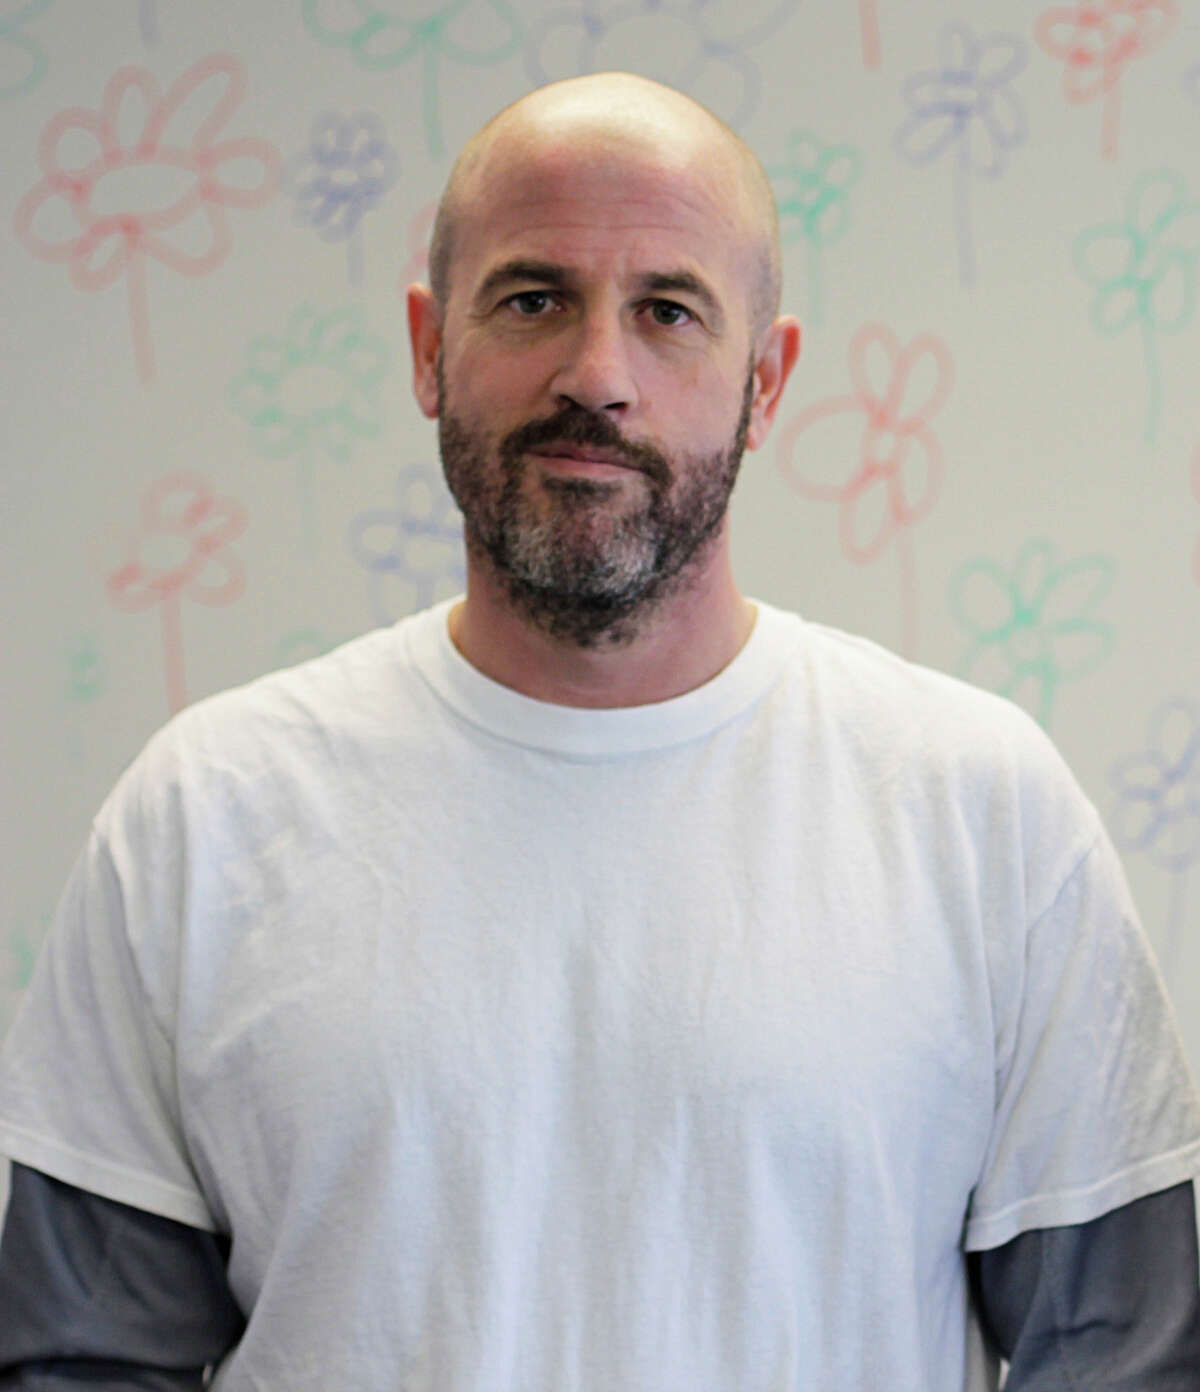 New Canaan, Conn., author James Frey will present his new novel, ìEndgame: The Calling,î at New Canaan Library on Wednesday, Jan. 7, 2015.